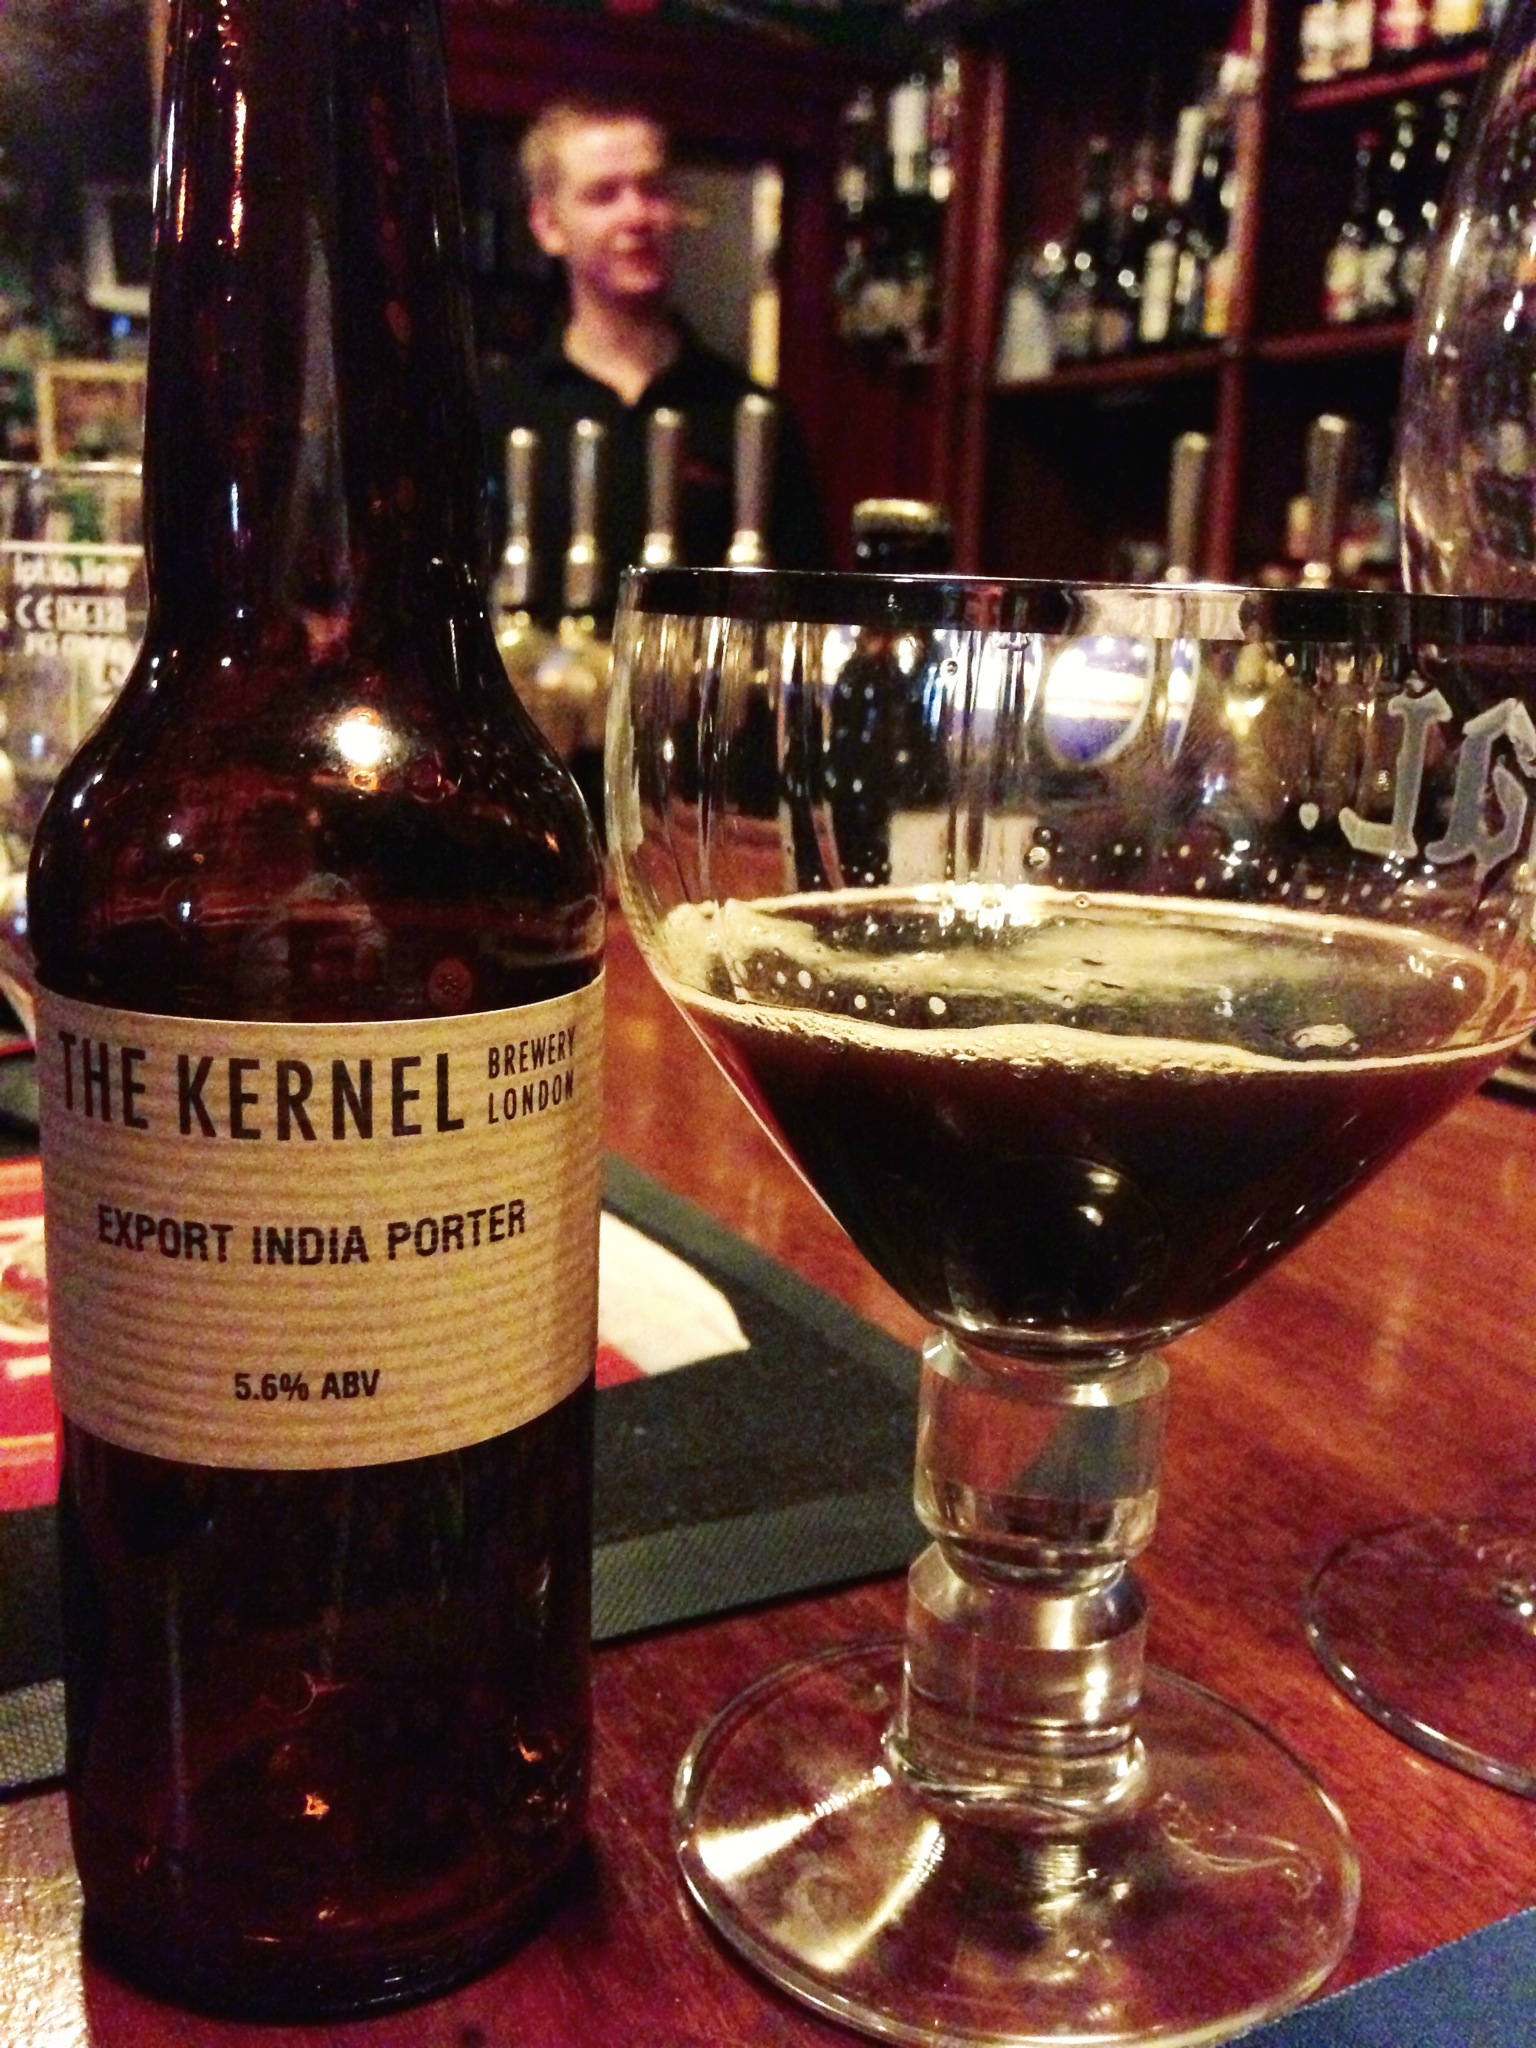 The Kernel, a UK brewery to watch, they make excellent beer.